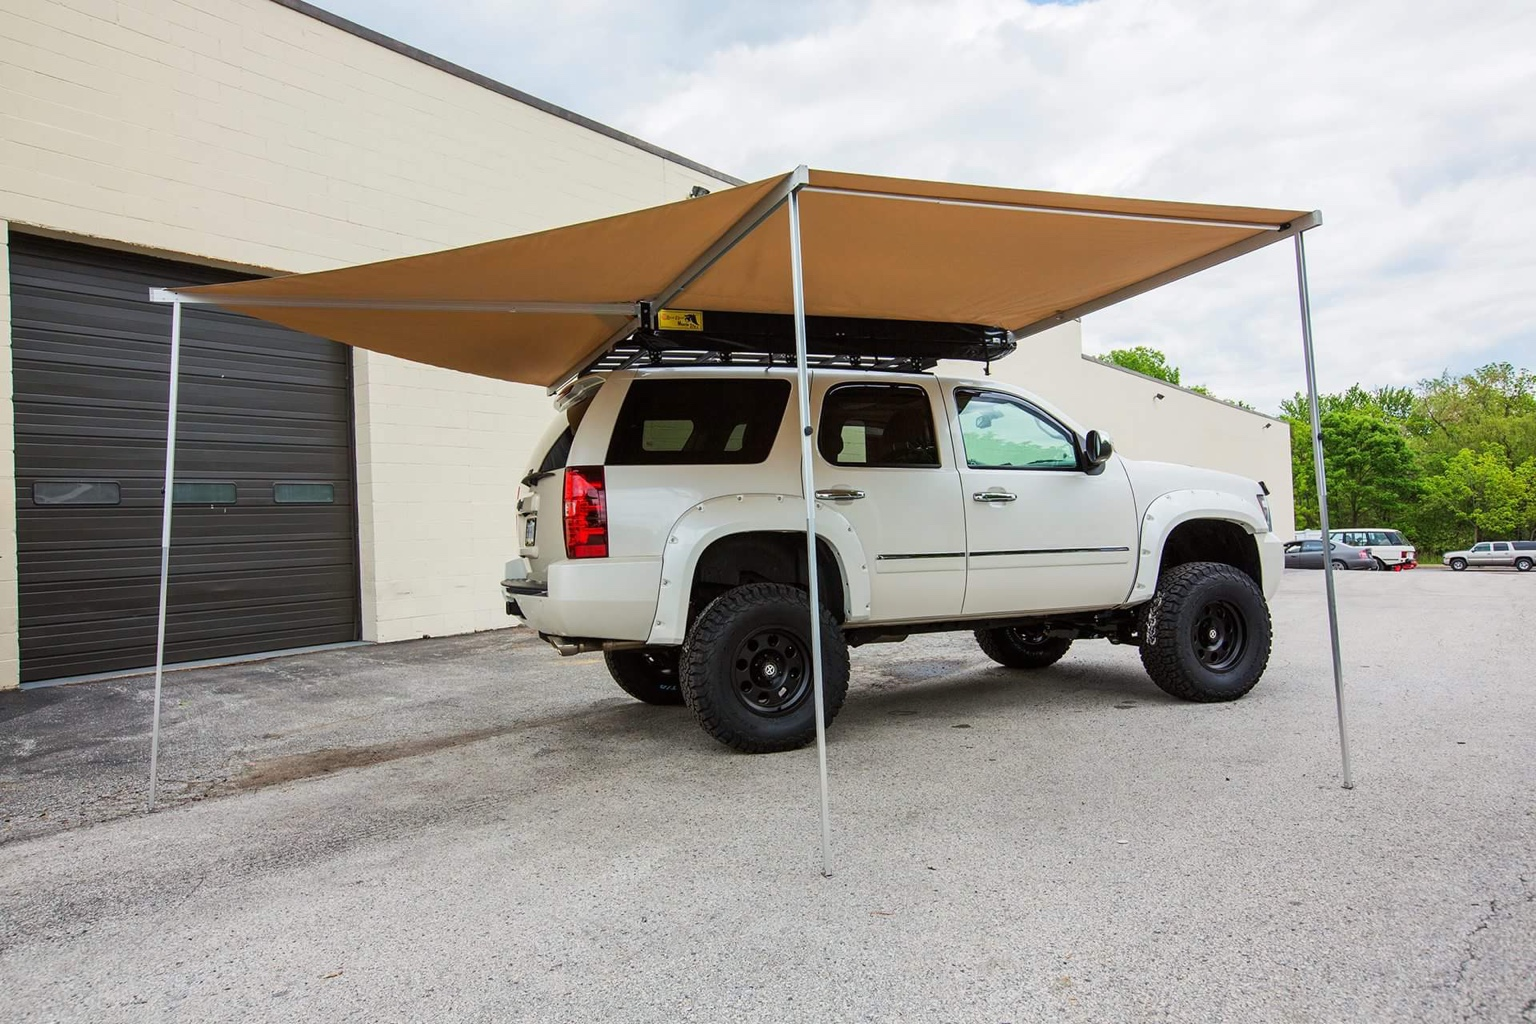 2011 Chevy Tahoe Expedition Portal